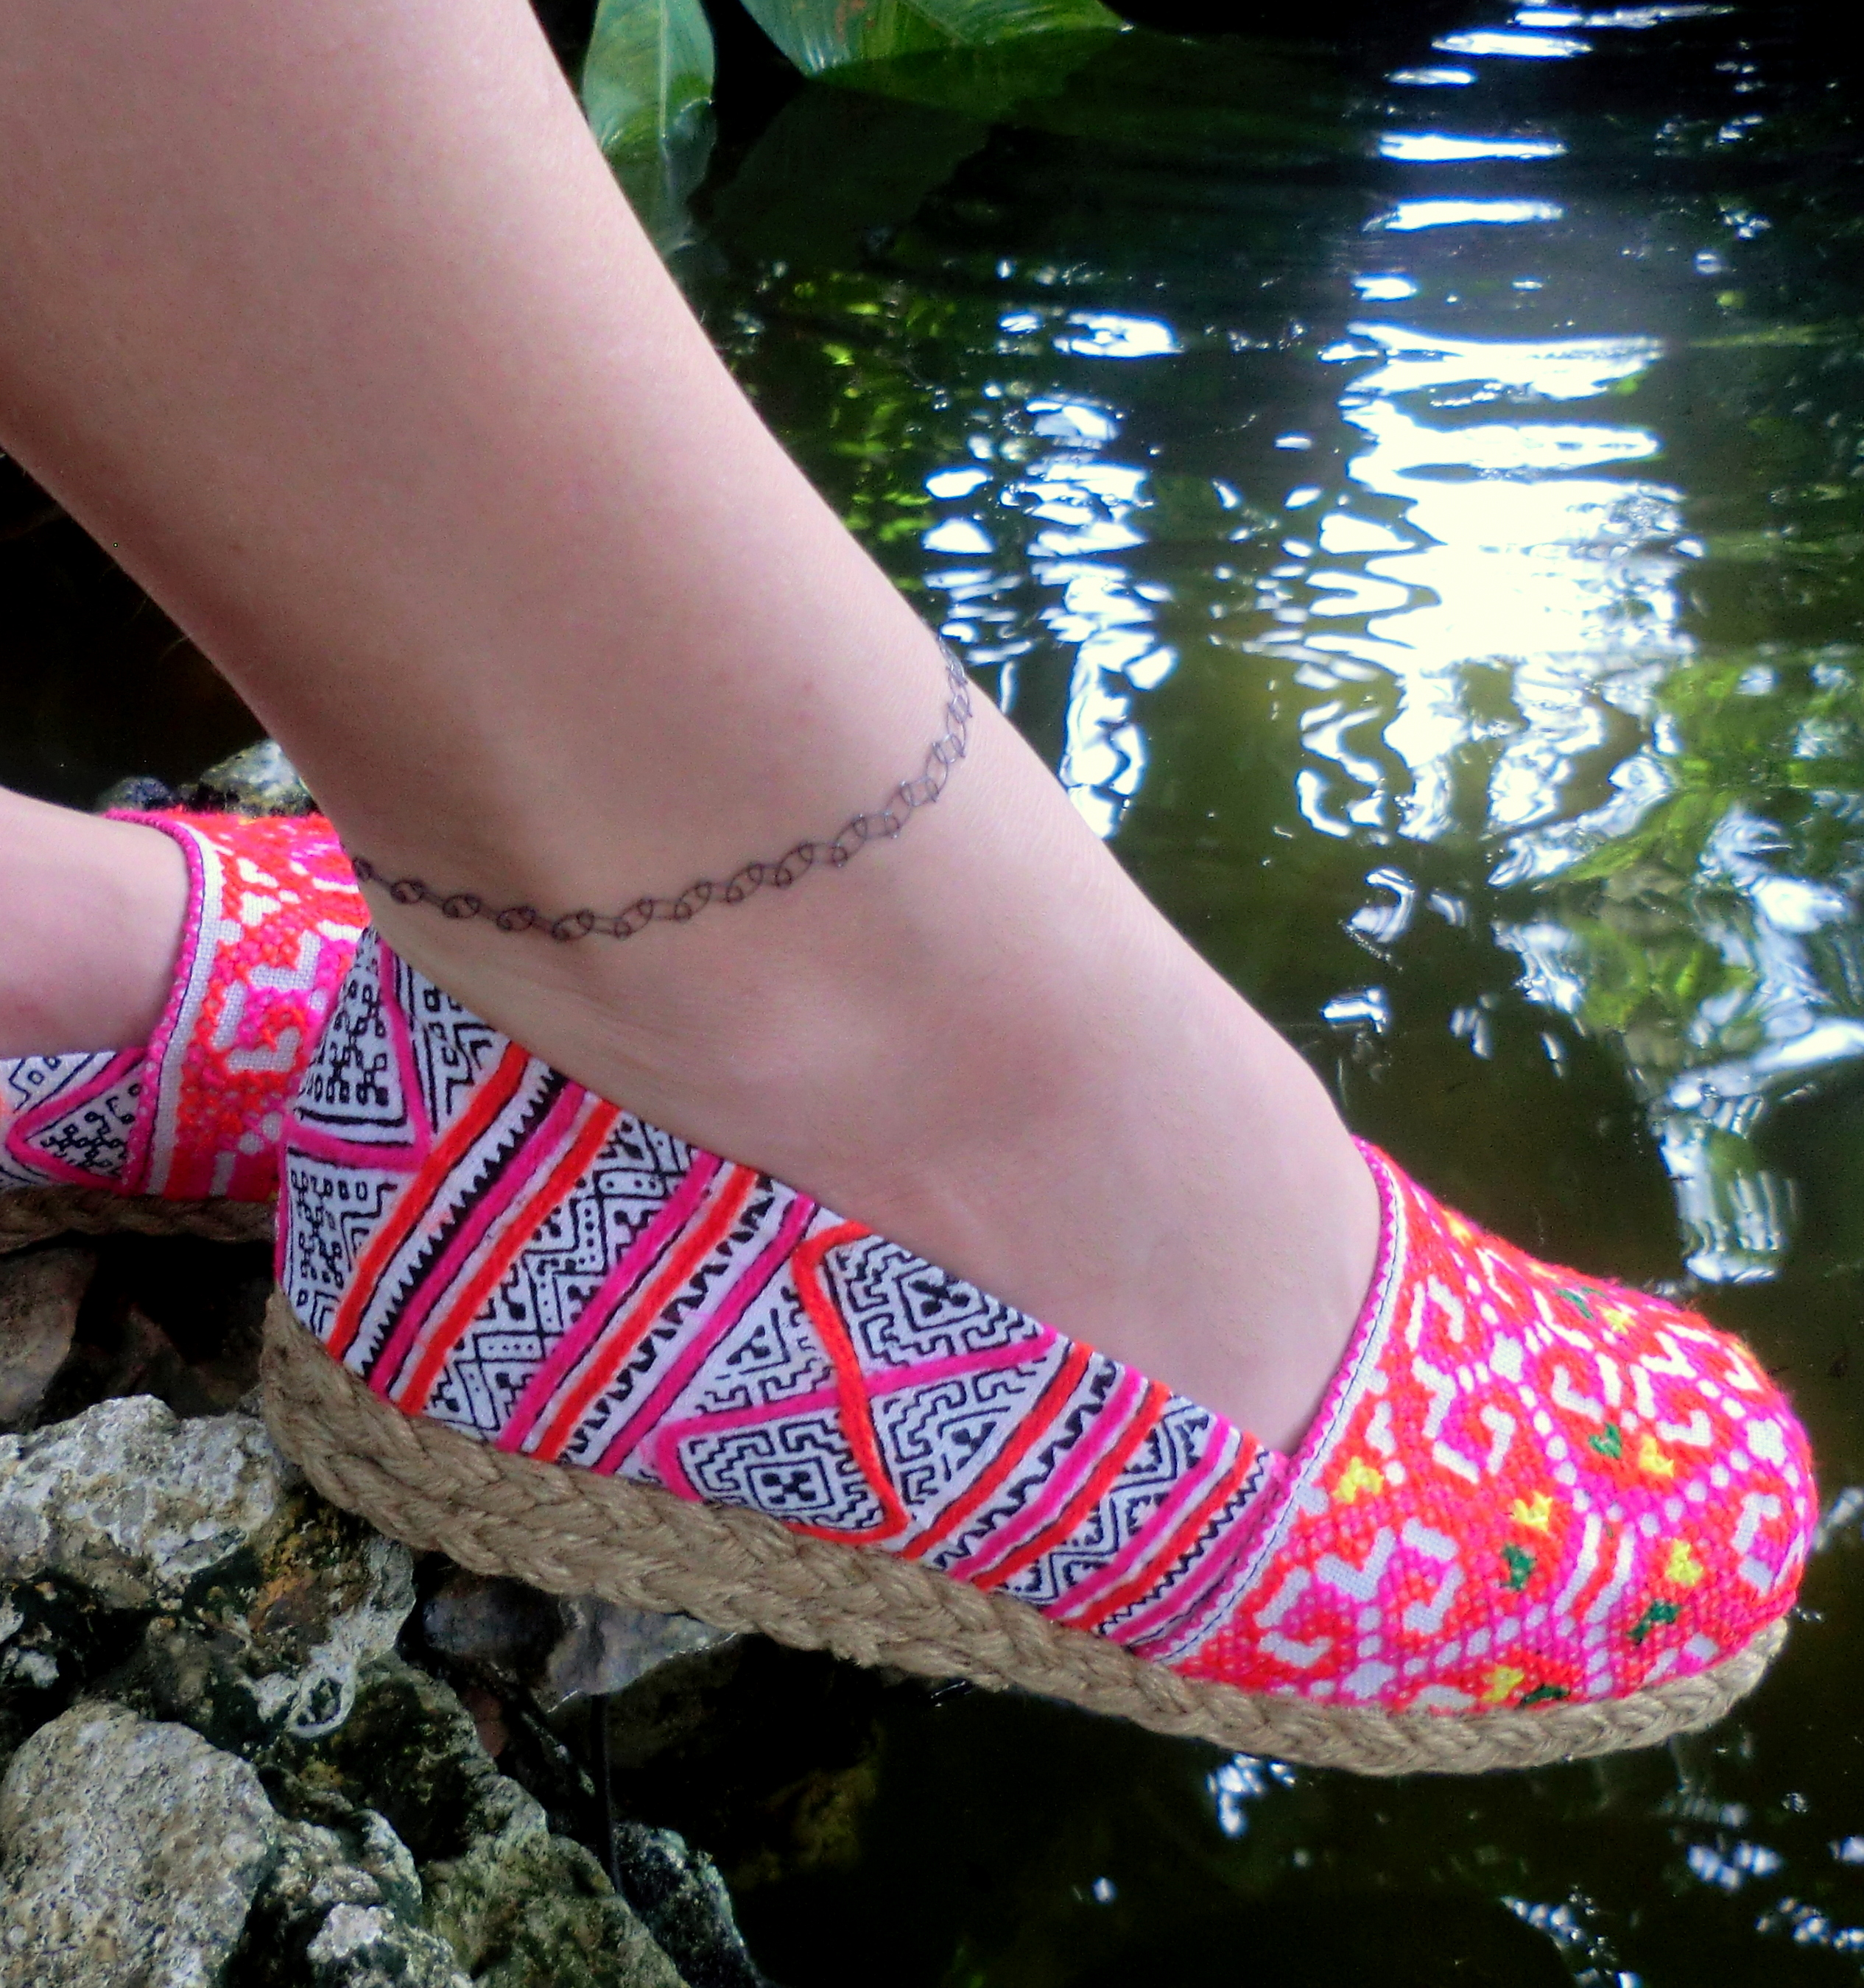 0812135005302 Womens Vegan Loafer Shoes In Colorful Hmong Embroidery & Batik